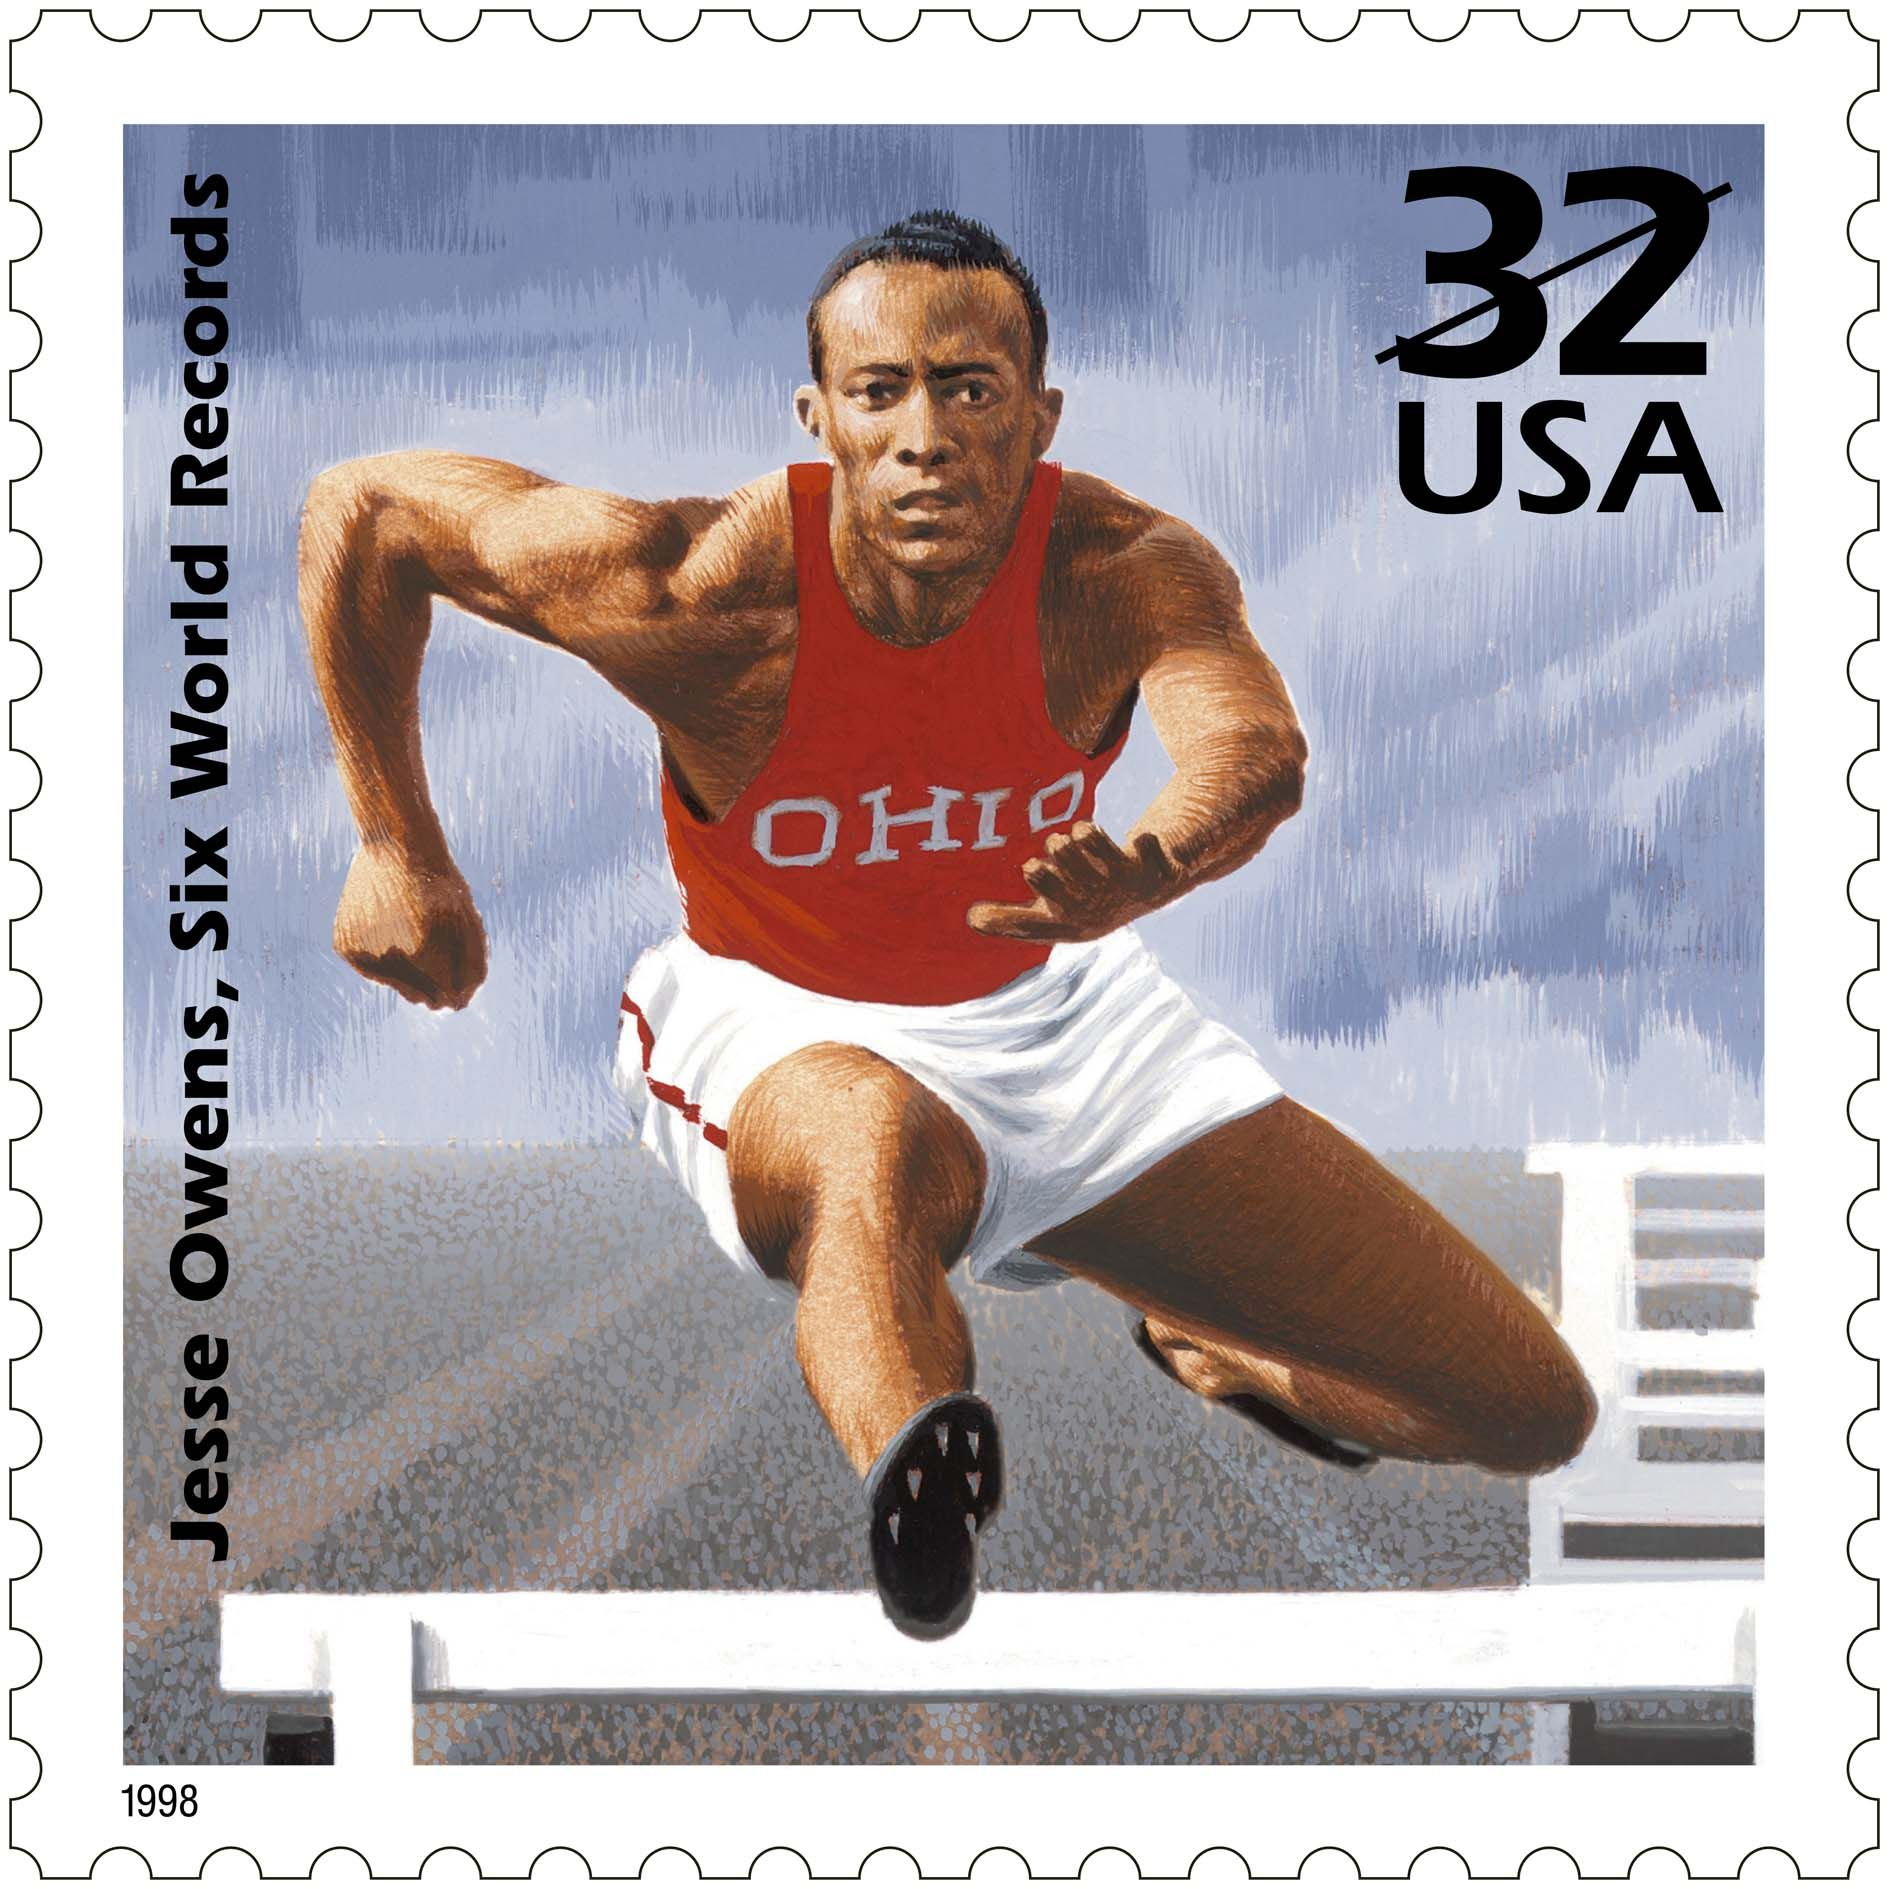 greatest us stamp celebrate the century usps stamp of til jesse owens an african american track athlete who won a gold medal at the 1936 nazi olympics said hitler didn t snub me it was fdr who snubbed me